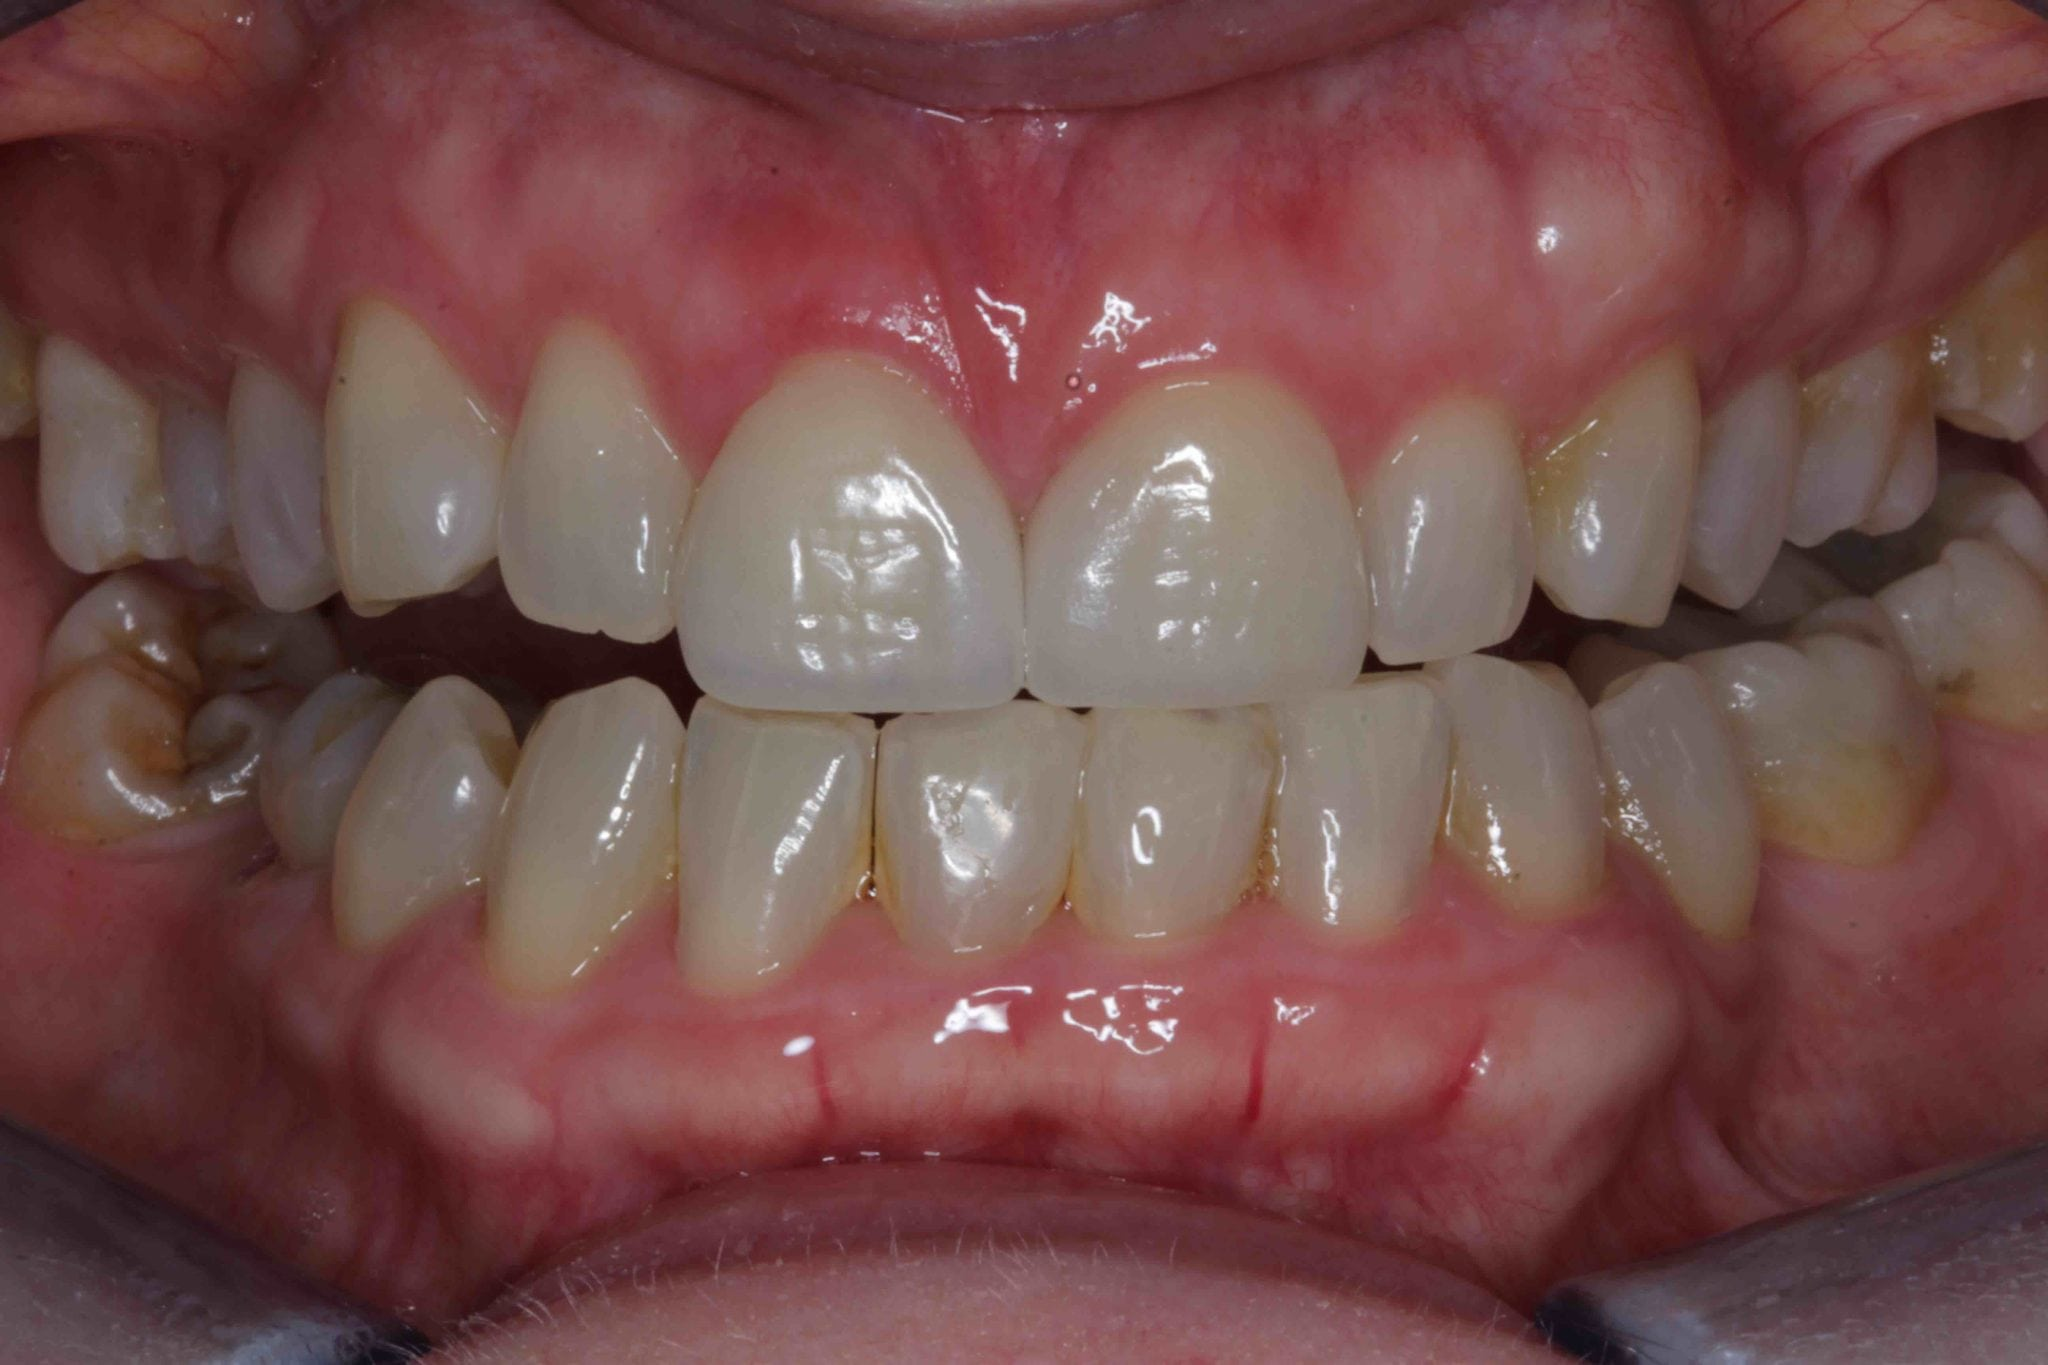 Worn Front Teeth Treatment - Dental Bonding After Pictures